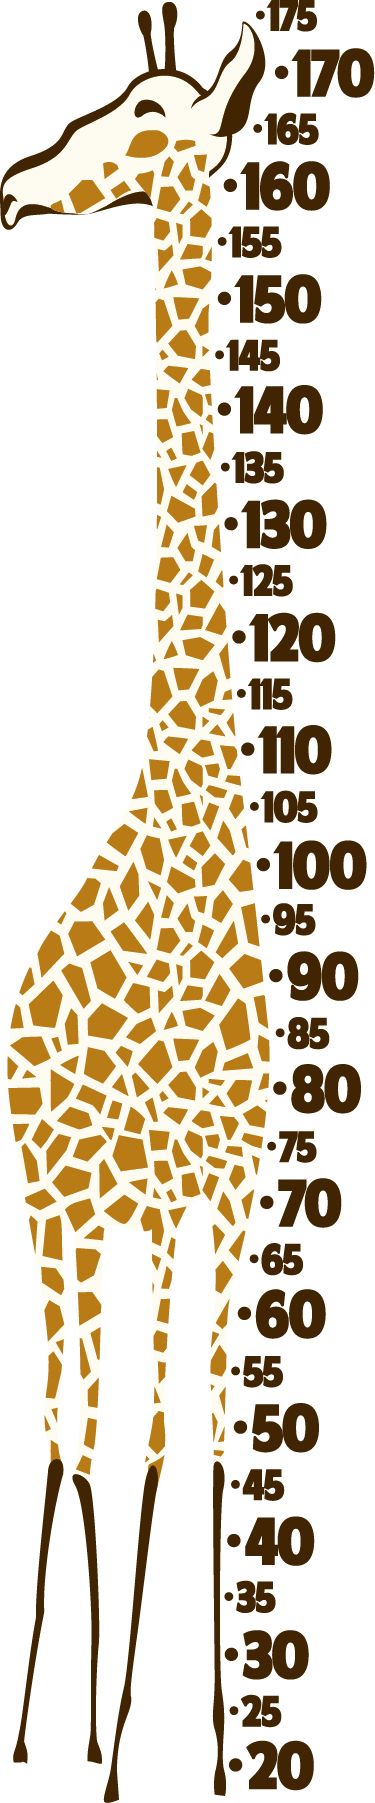 TenStickers. Realistic giraffe gauge  height chart wall sticker. Realistic giraffe gauge height chart sticker to decorate the bedroom space of children. It is easy to apply and adhesive.